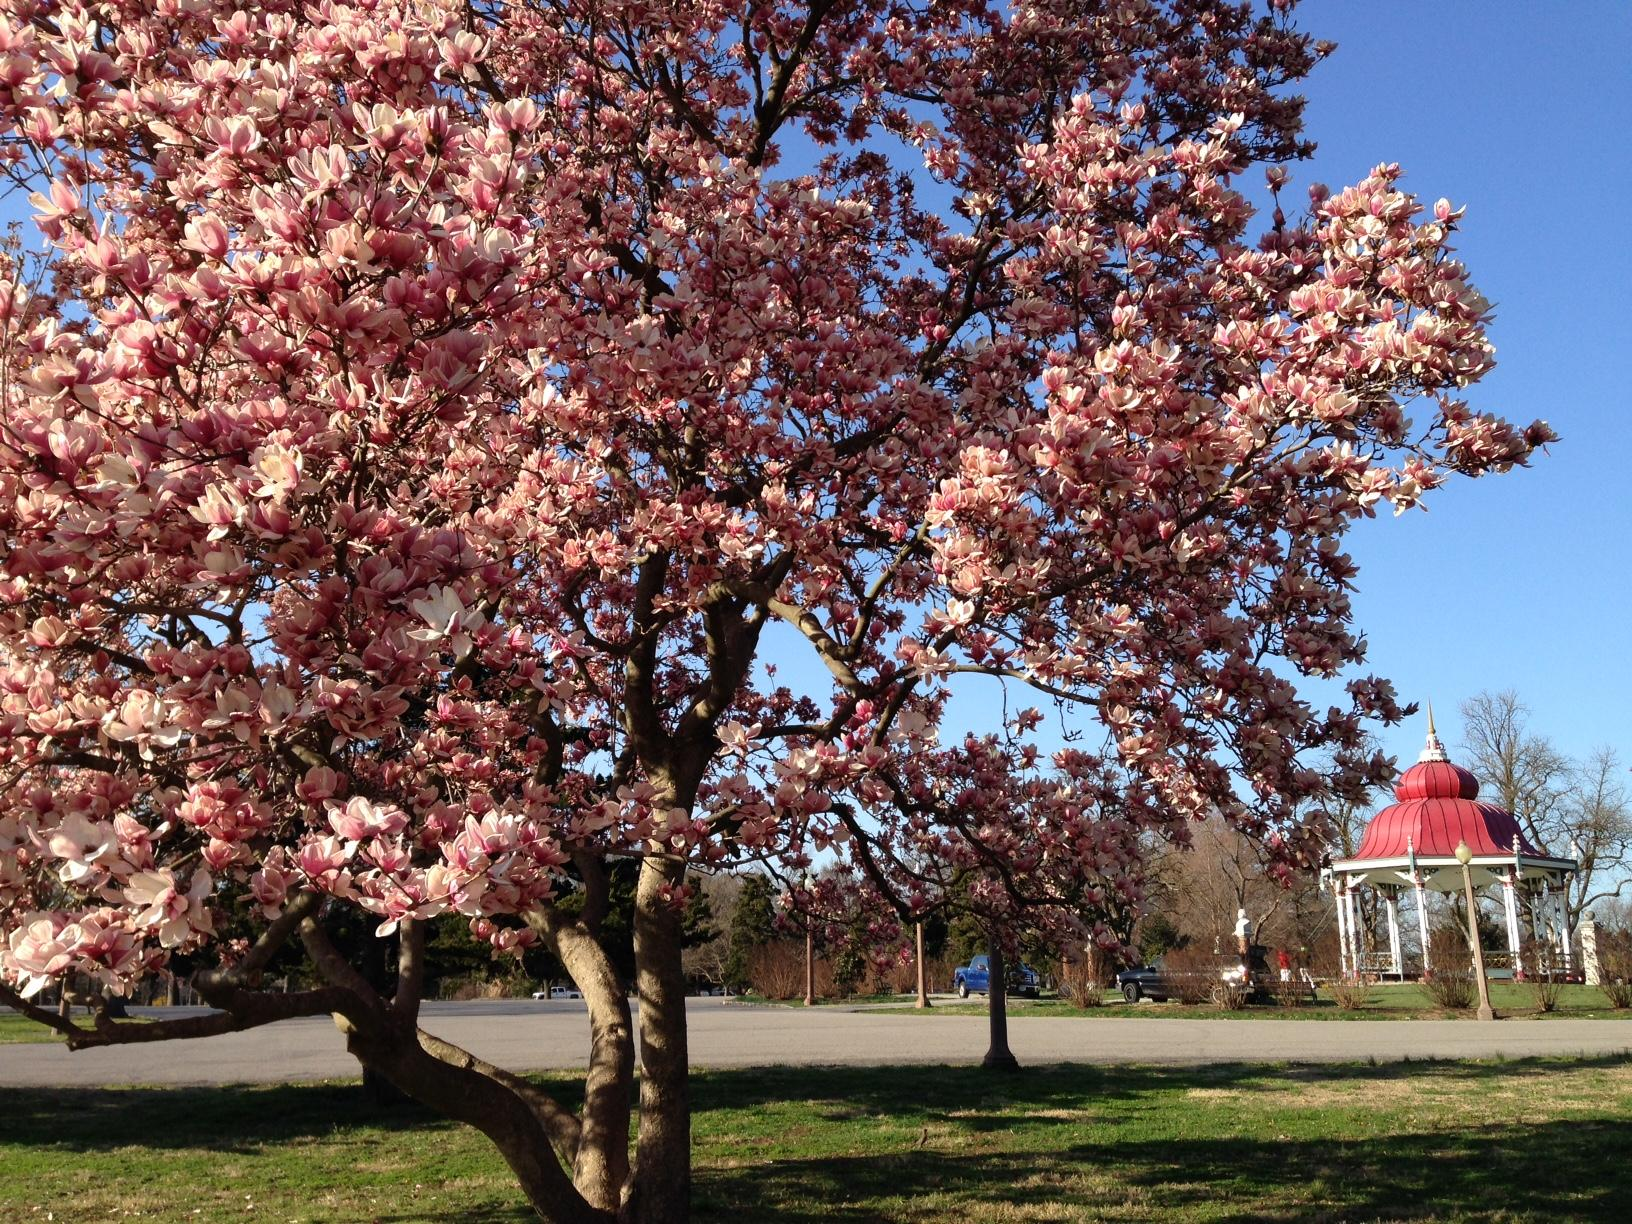 Flowering Trees Today Frozen Blooms Tomorrow St Louis Public Radio